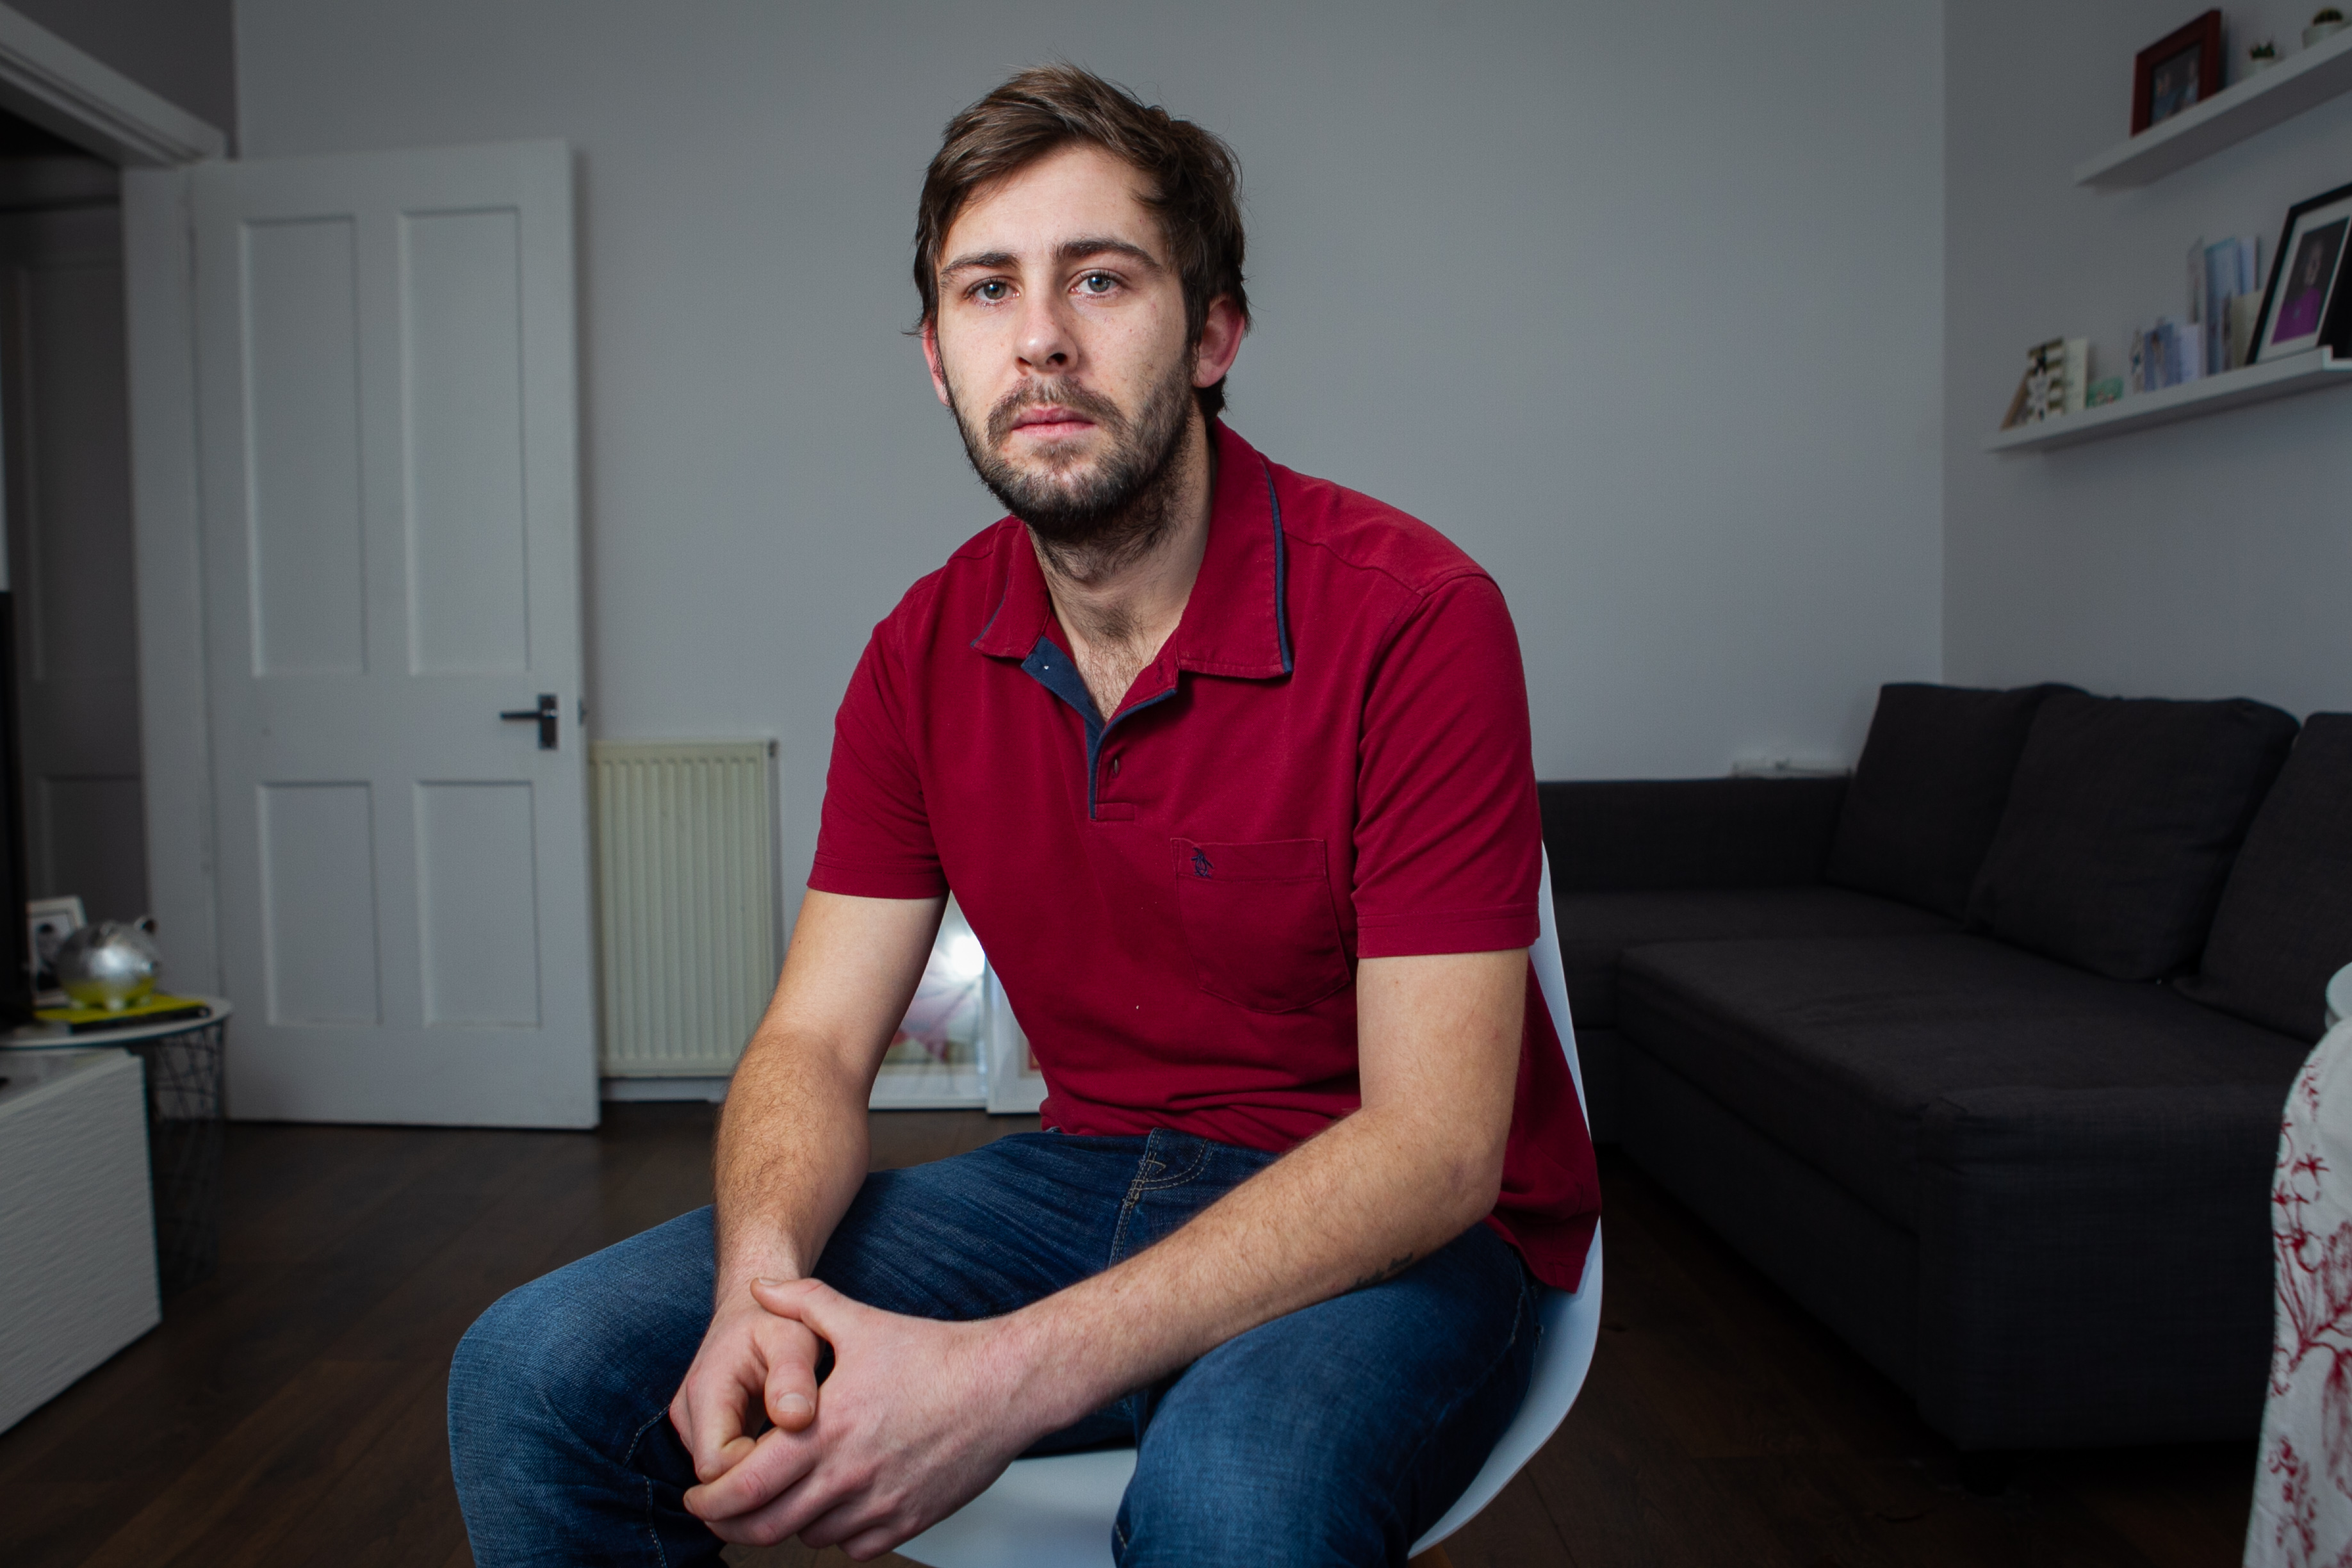 James Austin has turned to cannabis after his cancer diagnosis two years ago (Andrew Cawley / DC Thomson)